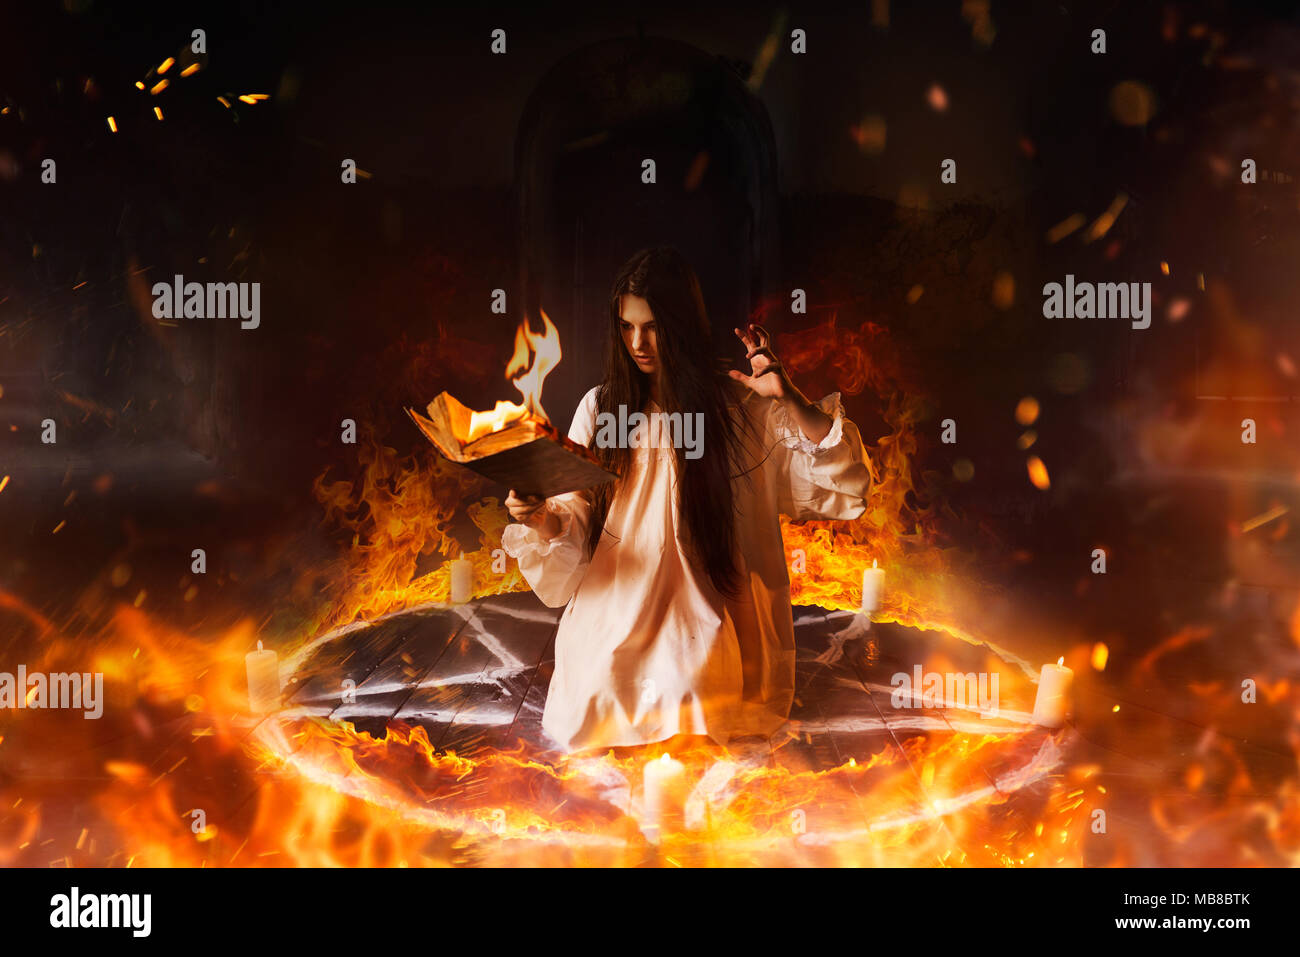 Young woman in white shirt sitting in the center of burning pentagram circle and reads spellbook, gark magic ritual, mysticism - Stock Image